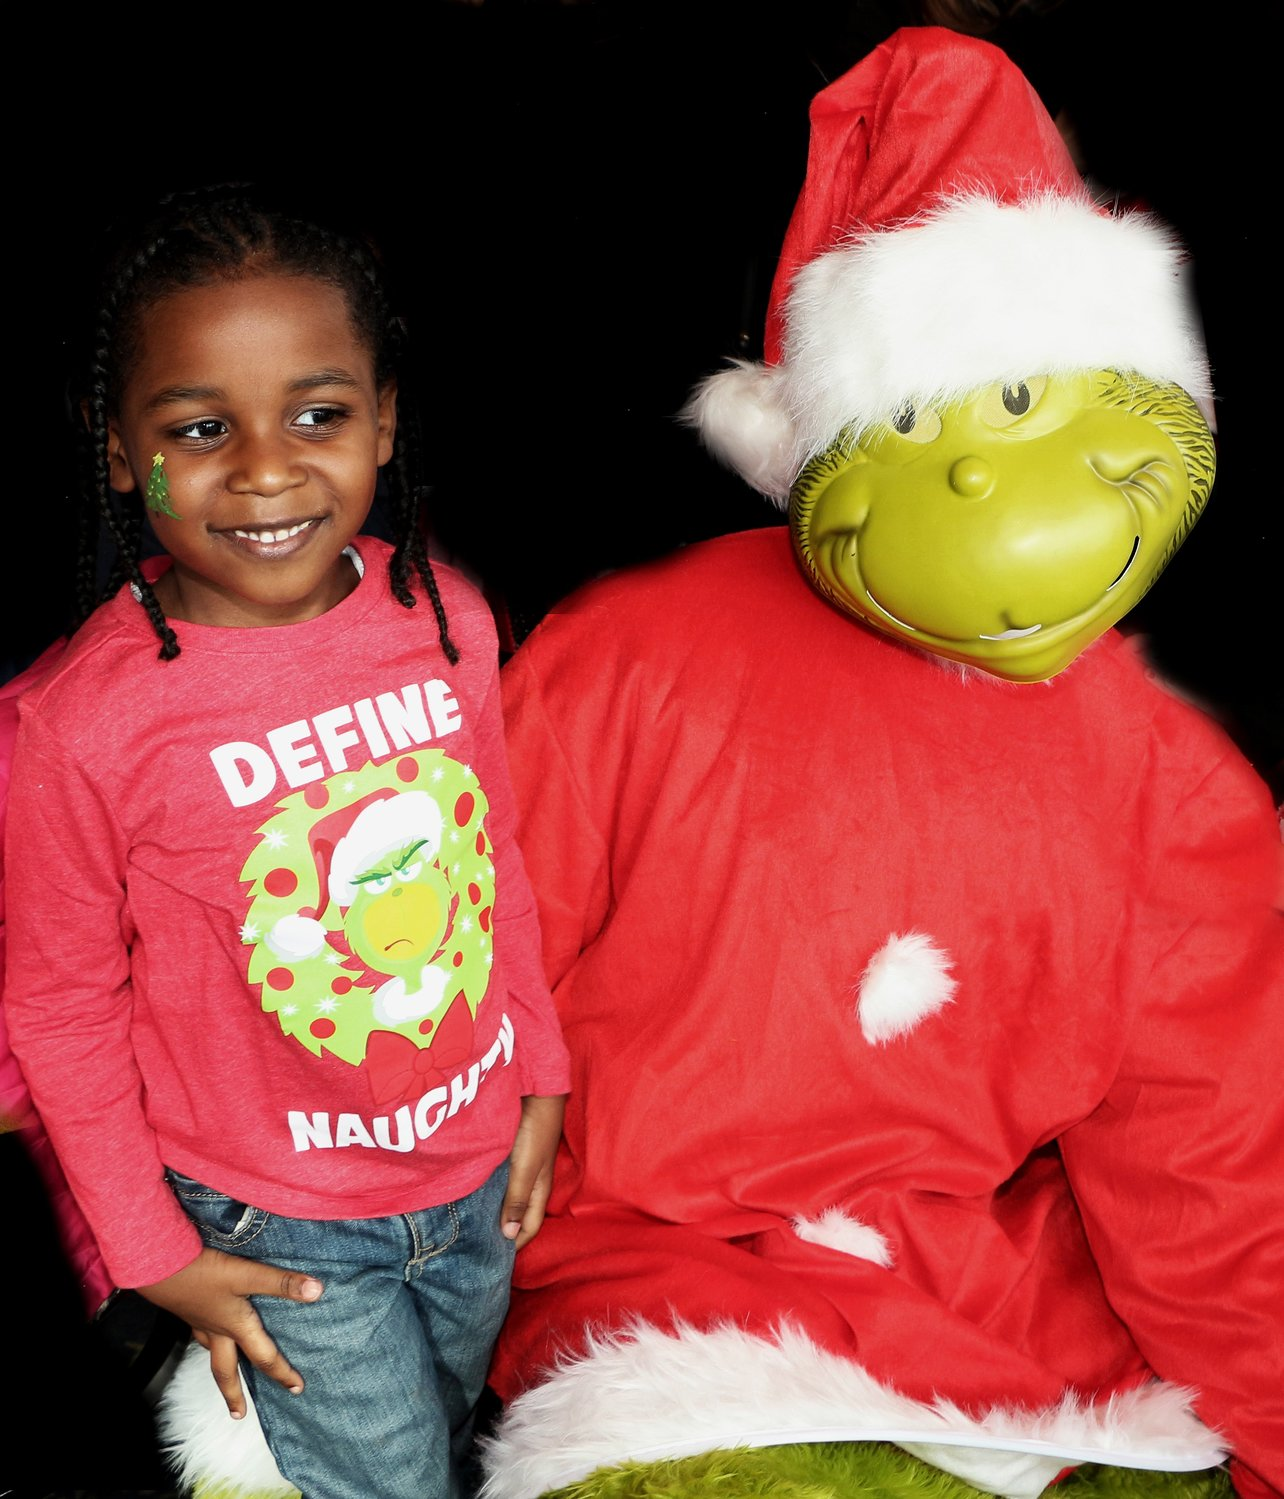 Aamir Bowman, 4 took a quick picture with the sneaky Grinch.